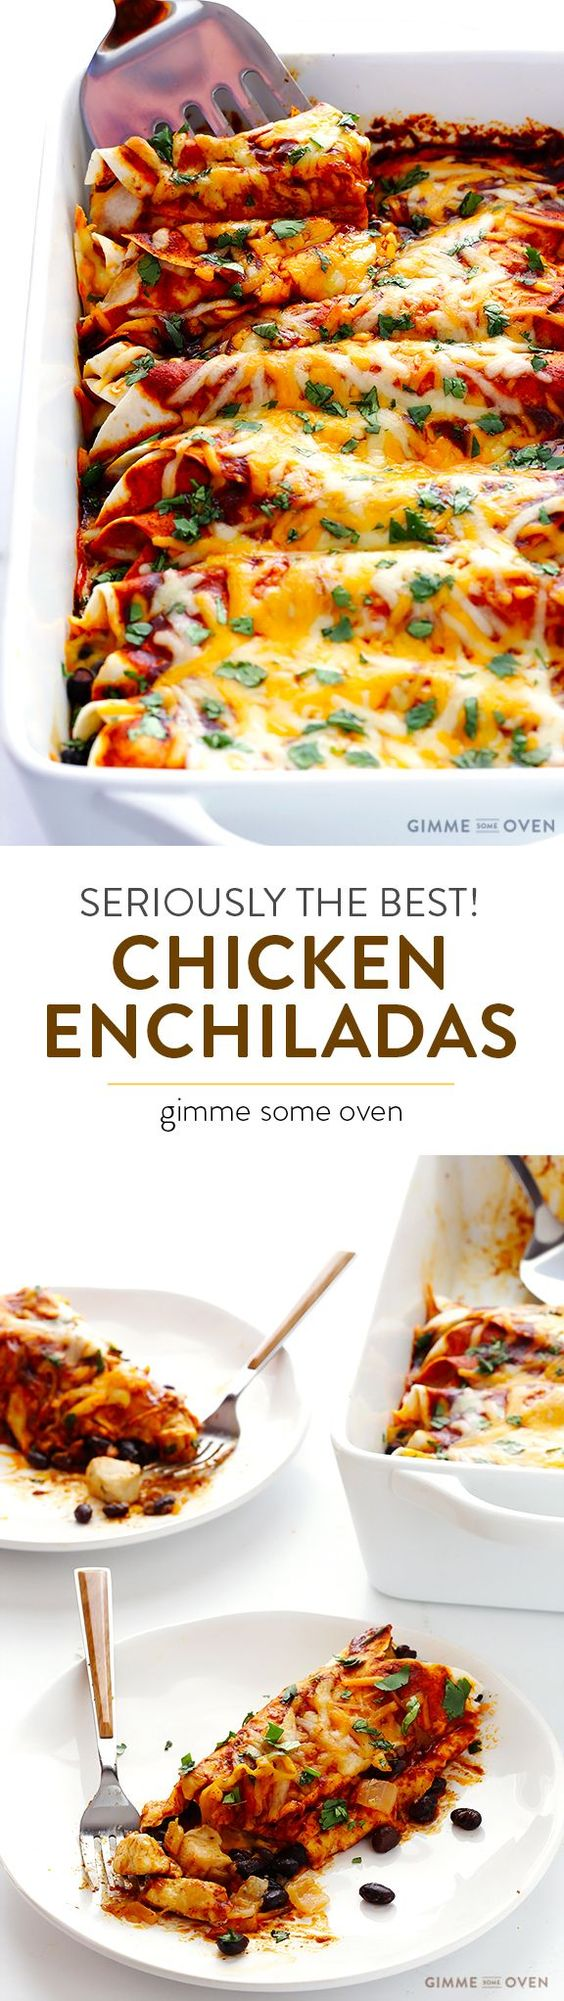 This seriously is my favorite chicken enchiladas recipe, and it's all thanks to a special (and easy!) homemade sauce.  My friends all agree!! | gimmesomeoven.com